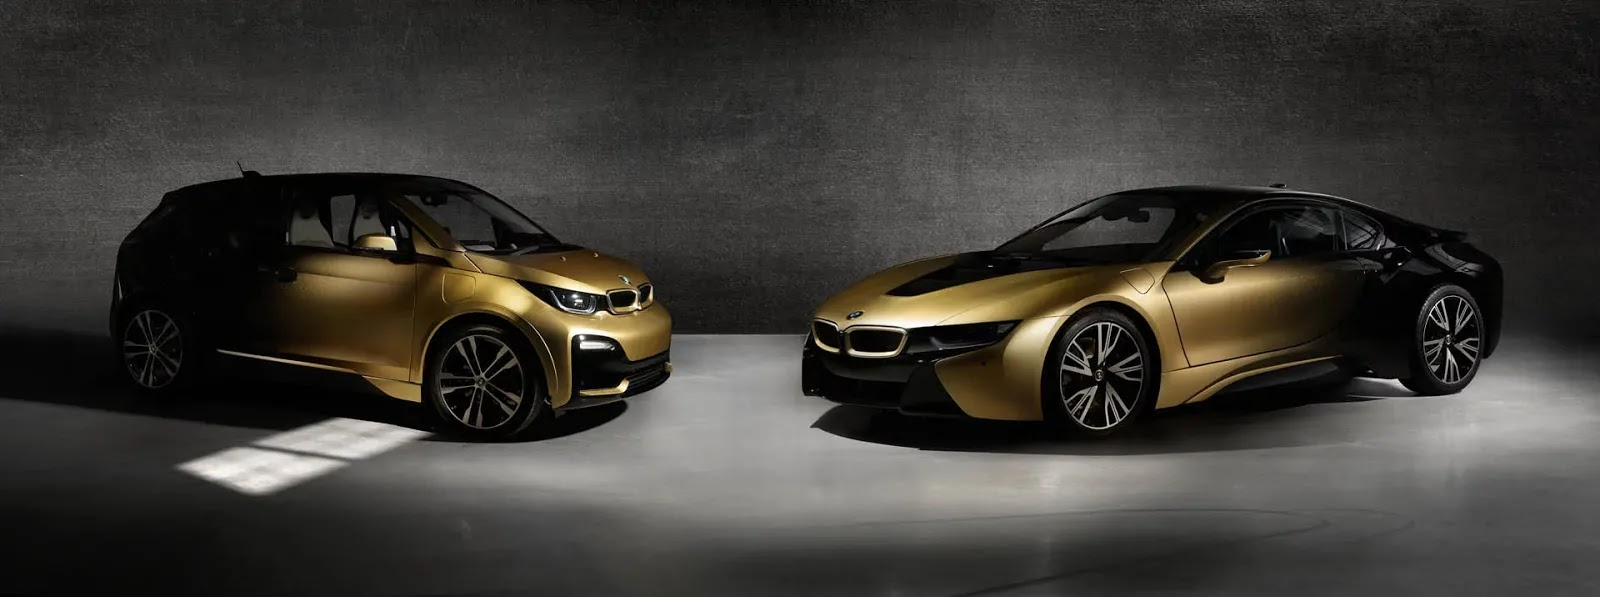 BMW i3 And i8 Starlight Editions Feature Real 24-Carat Gold Paint